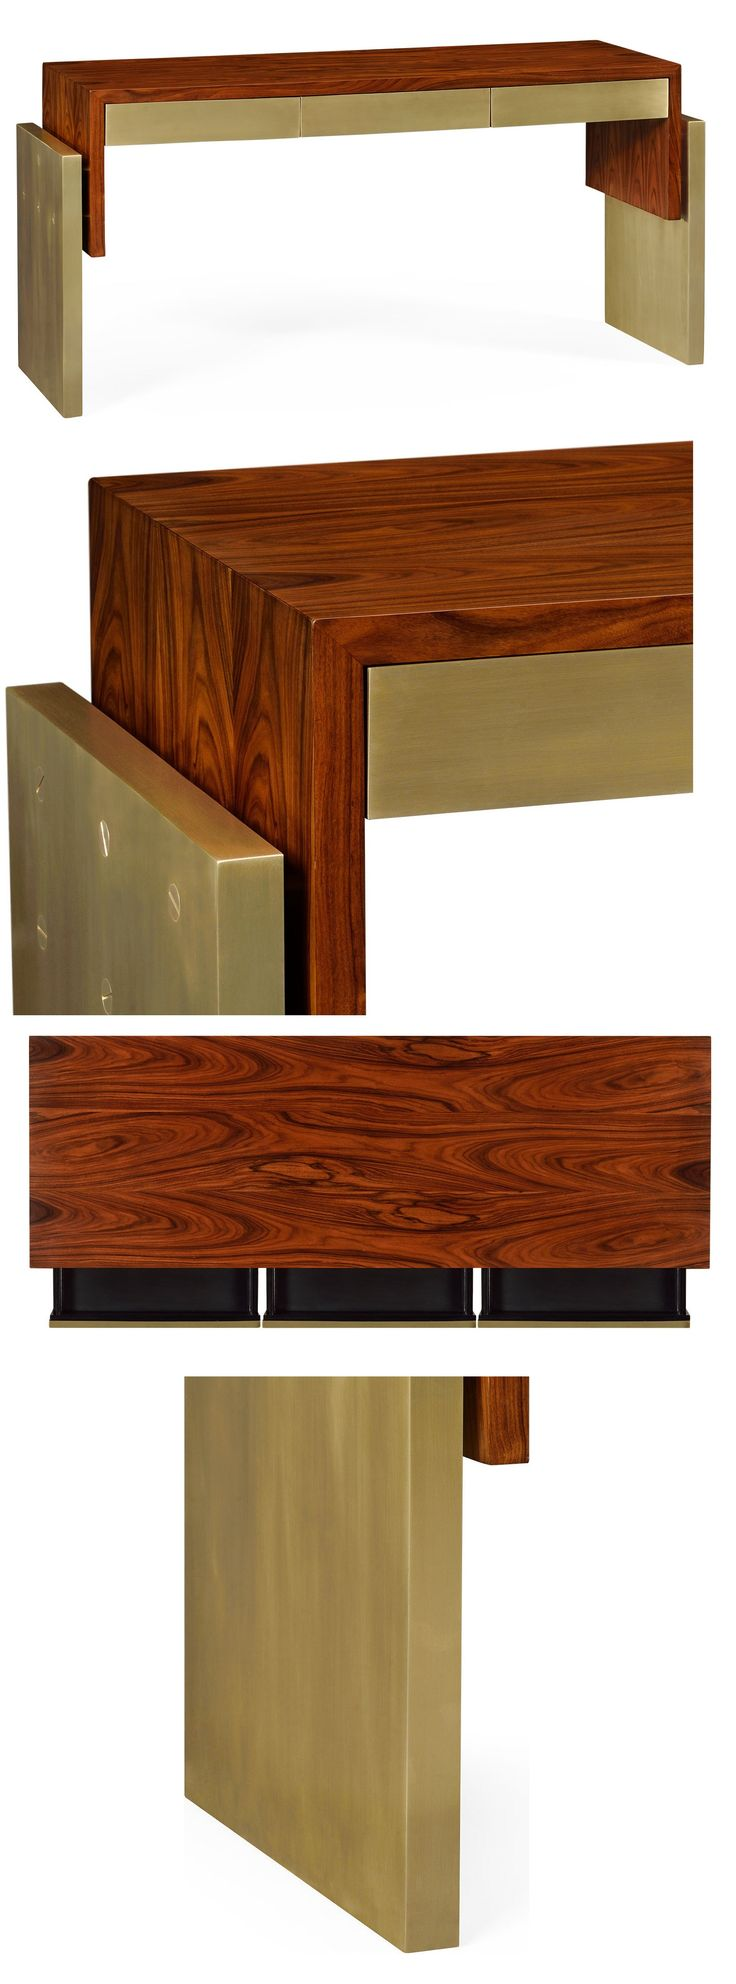 17 best ideas about narrow console table on pinterest. Black Bedroom Furniture Sets. Home Design Ideas